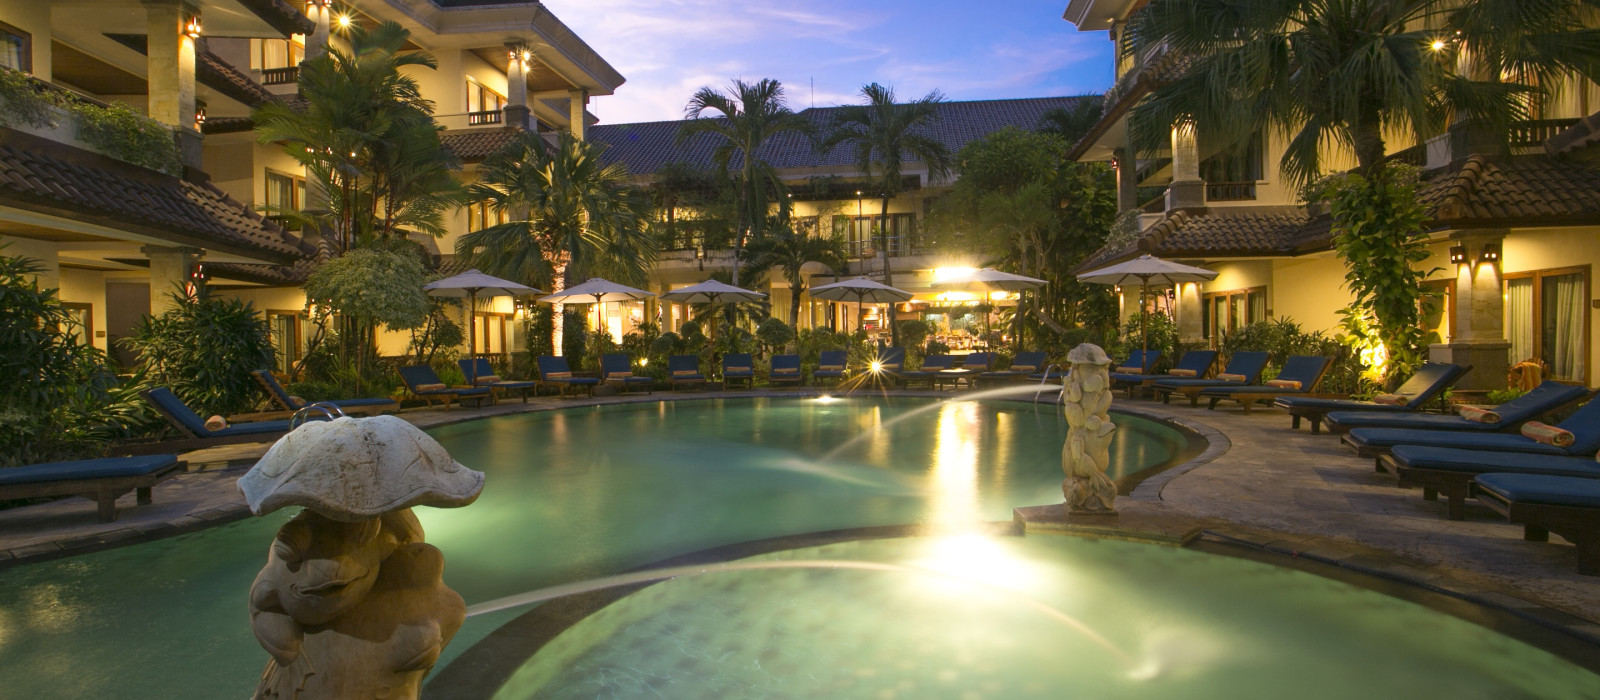 Hotel Parigata Resort and Spa Indonesien